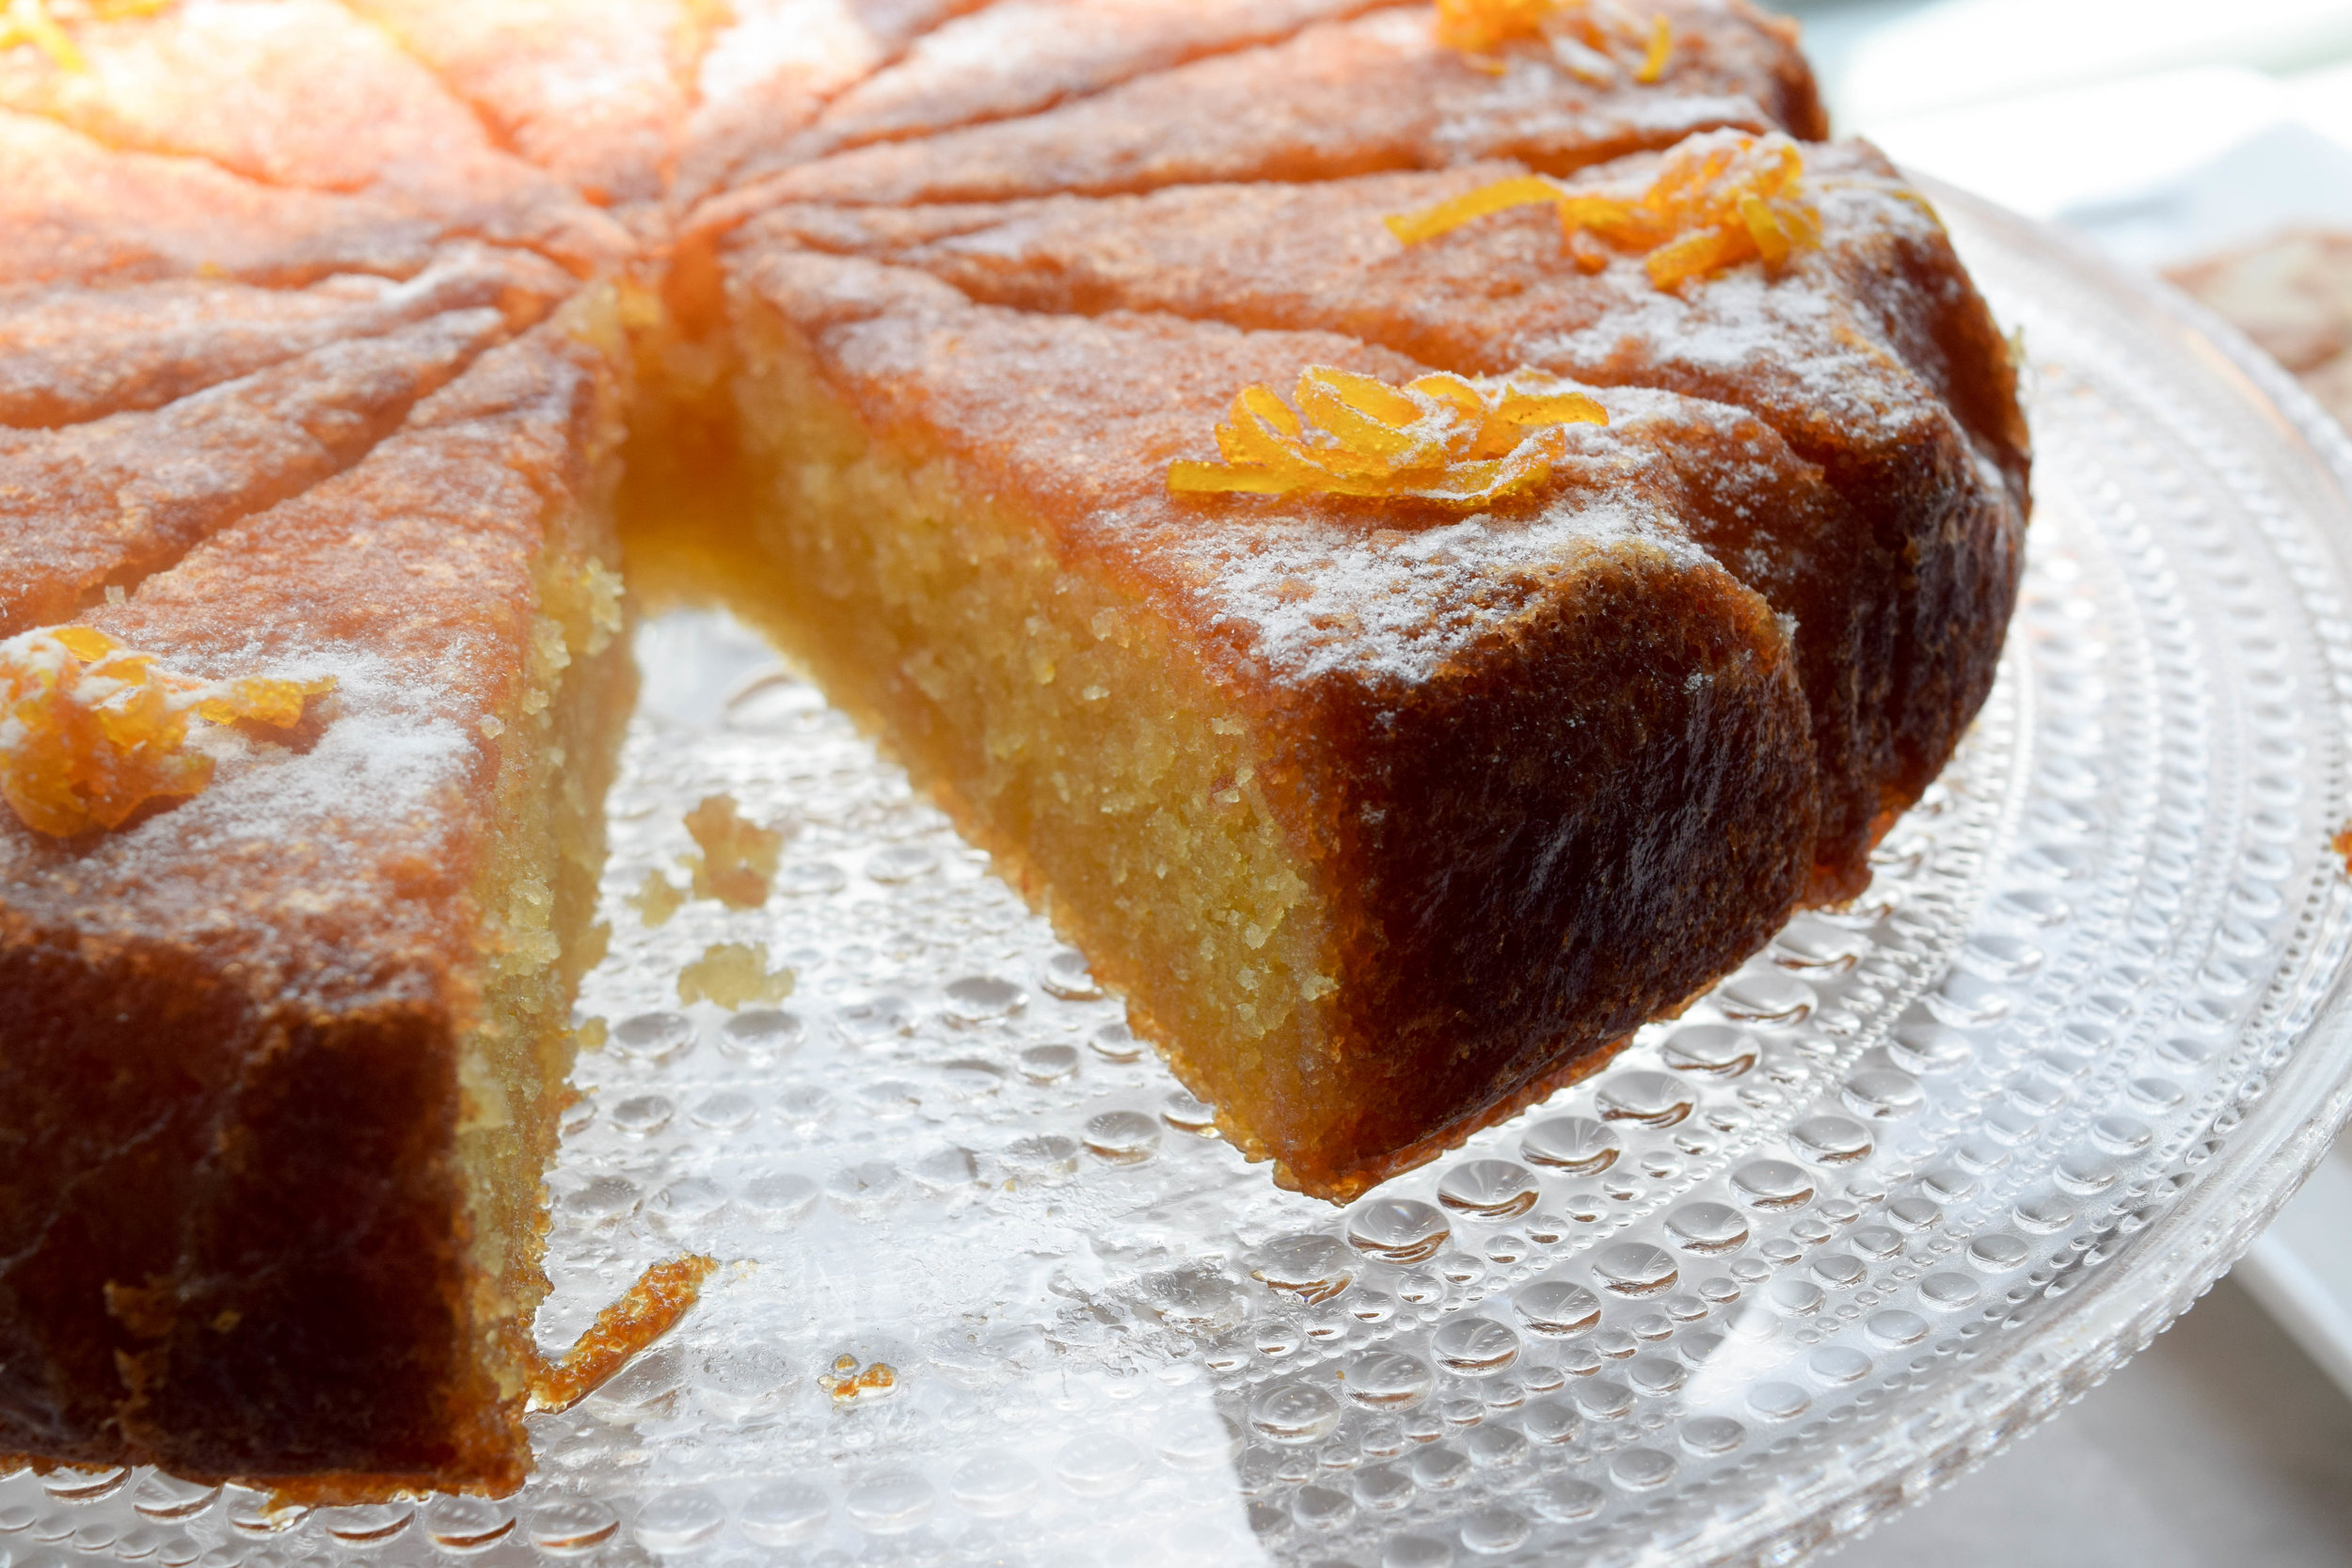 Tunisian Orange Cake at our Bath cheese shop